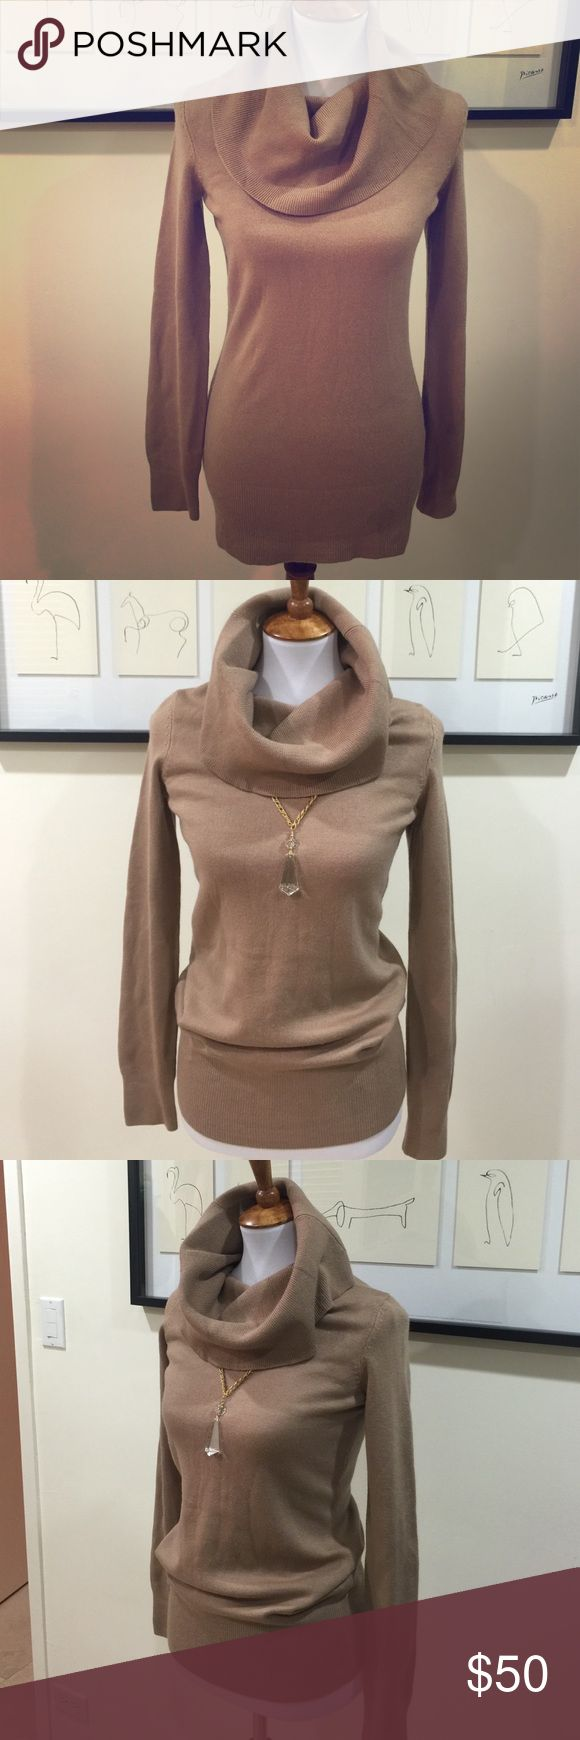 French Connection turtle neck Perfect condition and very comfy! Pair up with riding boots, skinny jeans or leggings this winter season.  Dress it up or down. Smoke free home. French Connection Tops